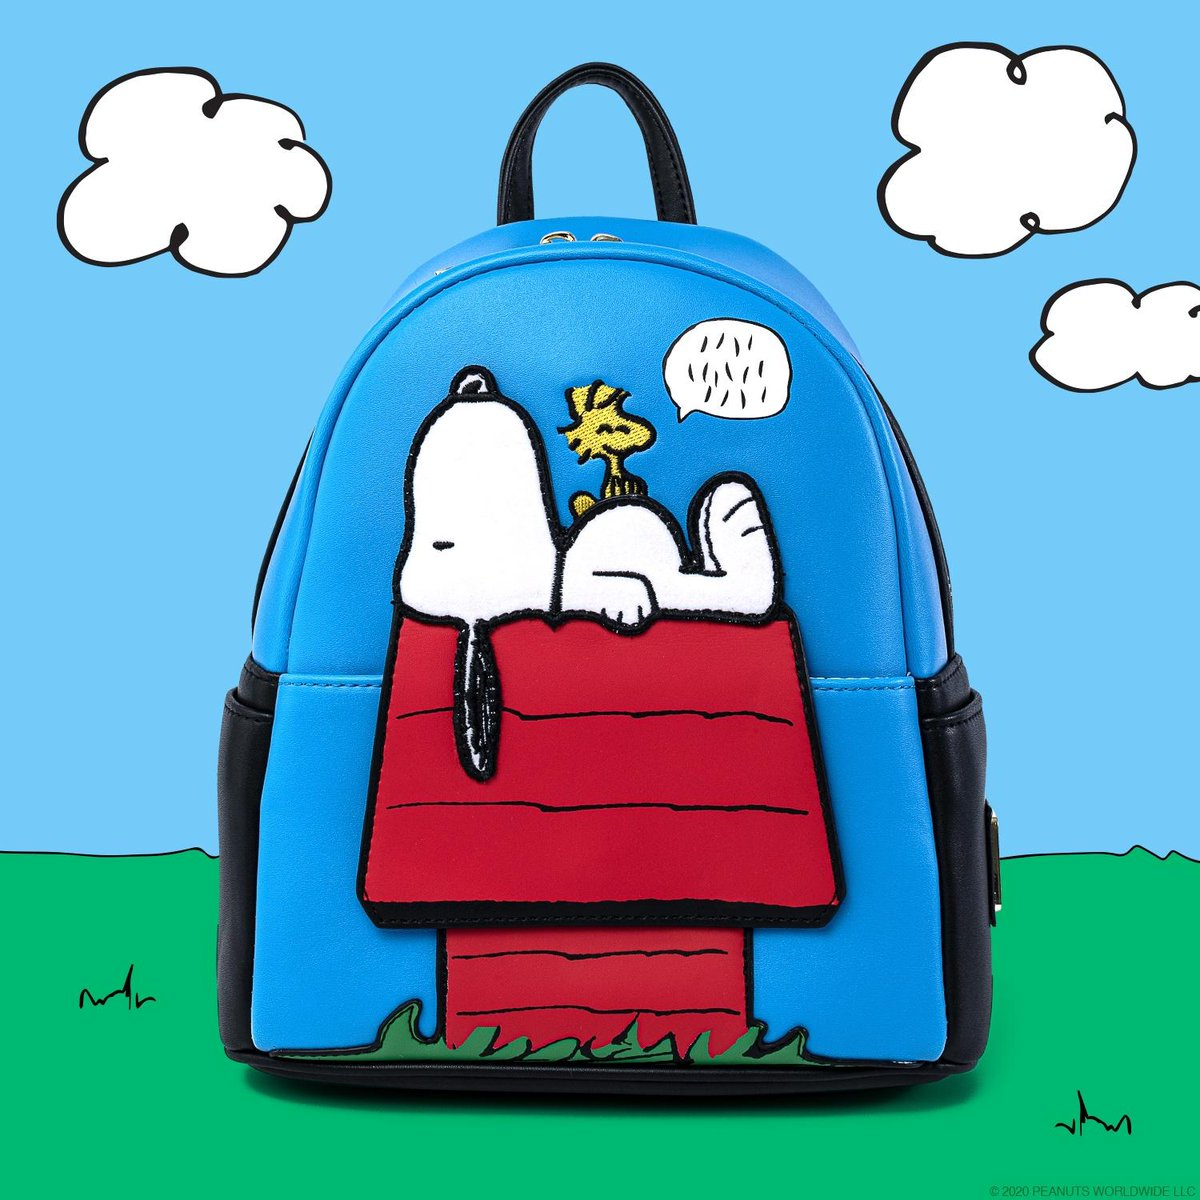 AAUGH! Be prepared to be obsessed with our Peanuts collection! The very lovable Snoopy and Woodstock are featured on a mini backpack and good ol' Charlie Brown is on a crossbody bag with a coordinating wallet!! Now available on bit.ly/33Z13IJ! 💛🎹🖤 #Loungefly #Peanuts